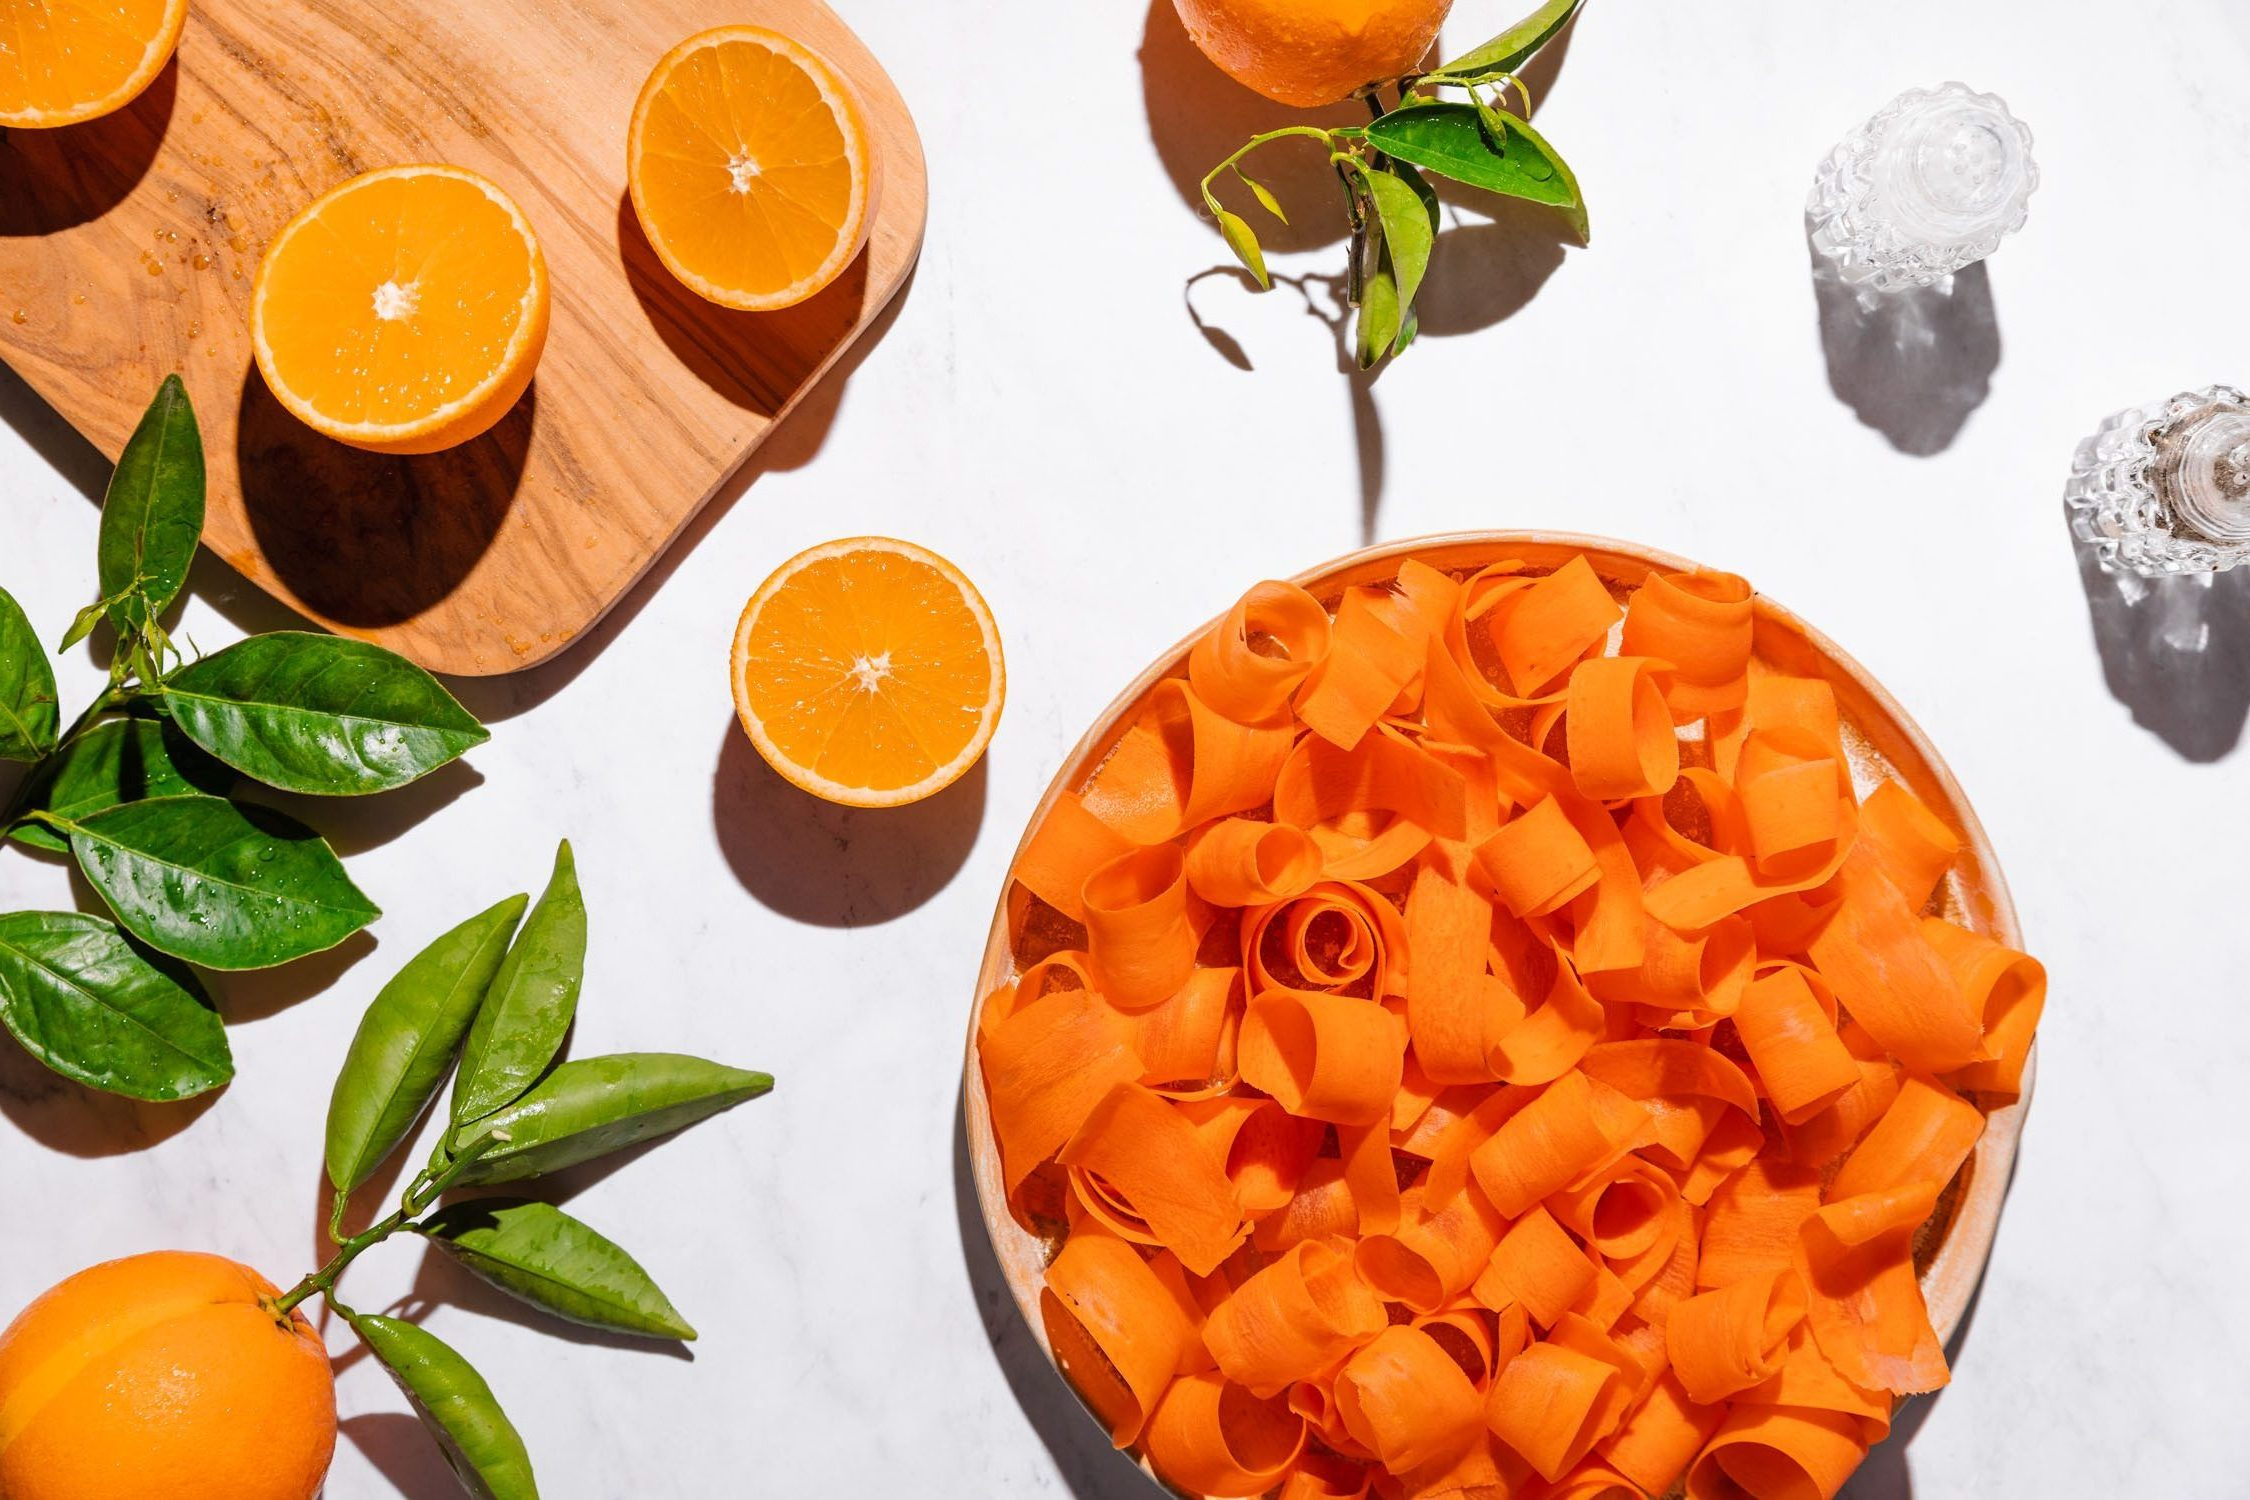 Overhead shot of a plate filled with peeled and curled carrots surrounded by oranges and a cutting board.